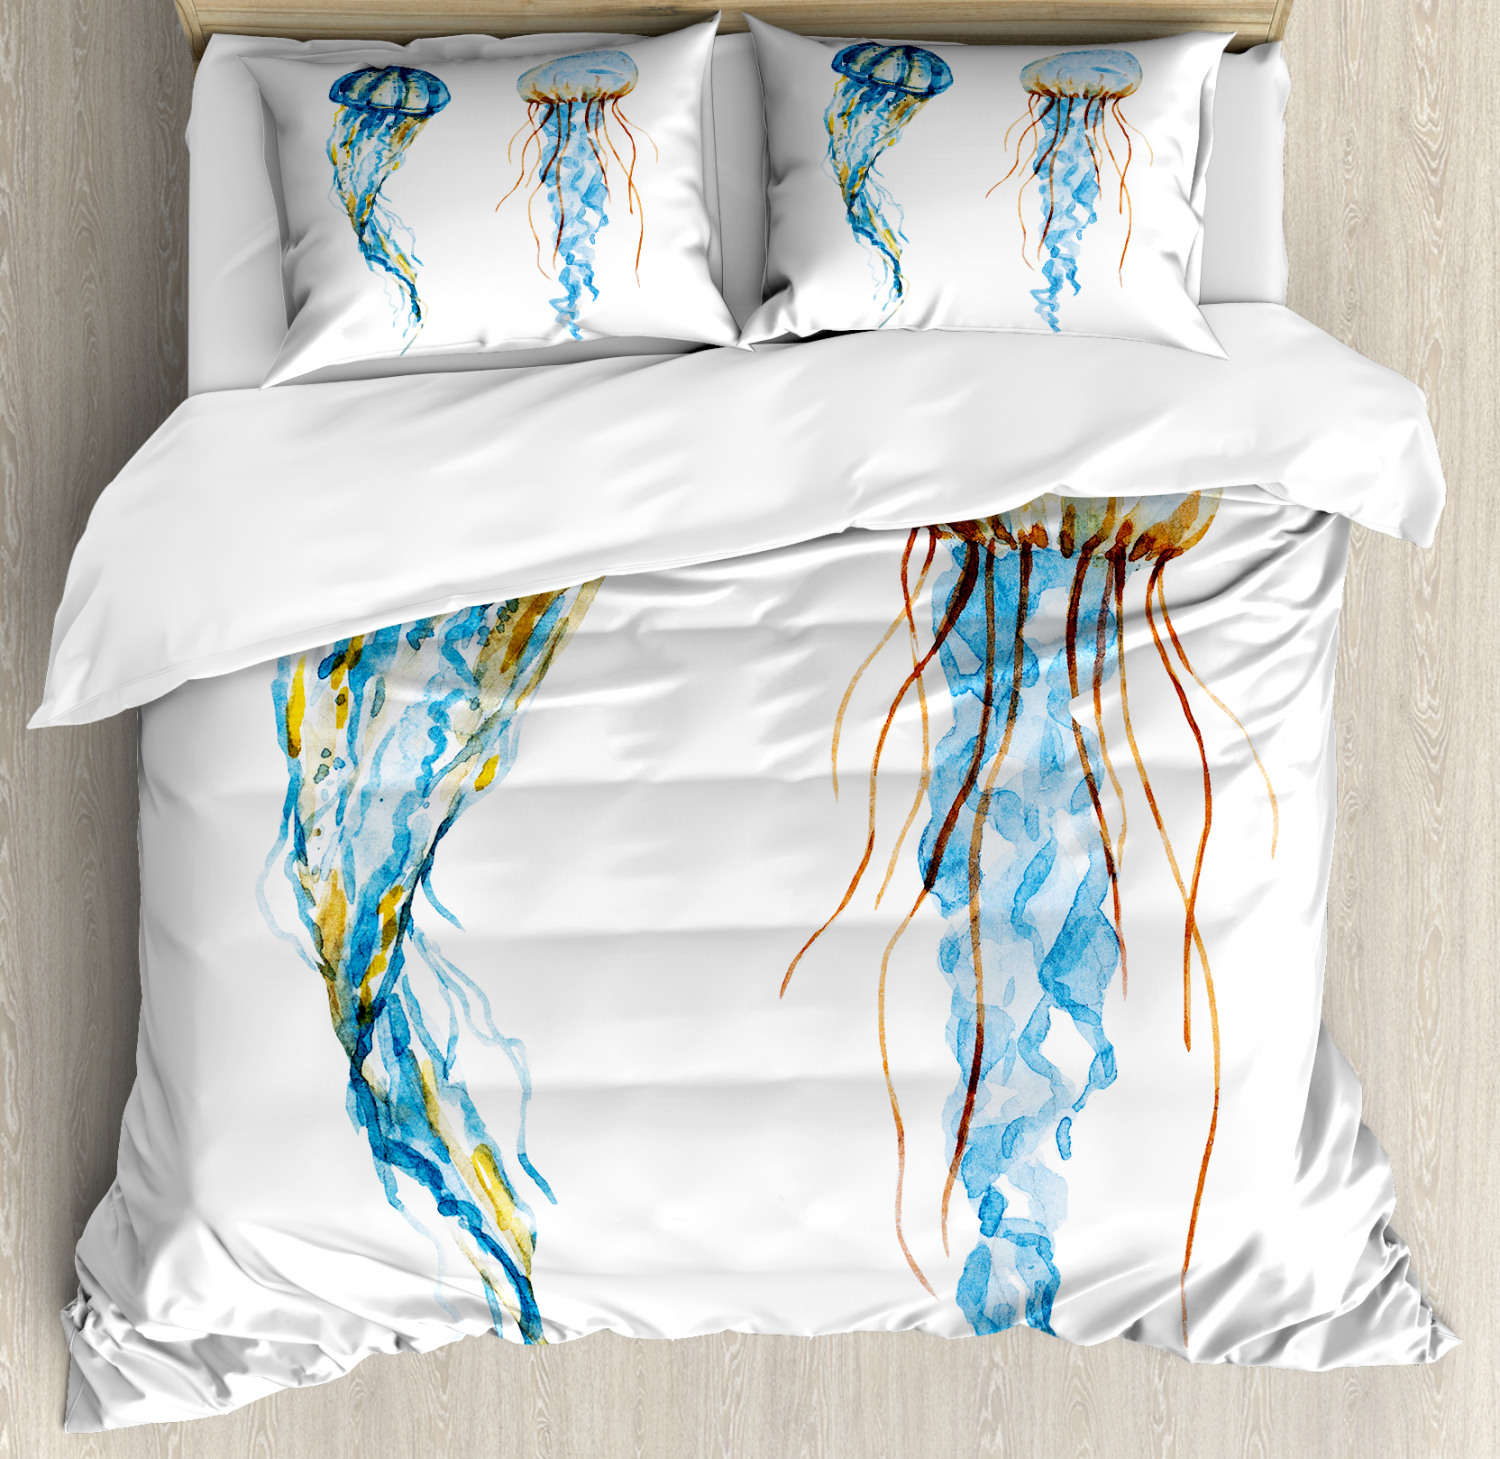 Nautical Duvet Cover Set with Pillow Shams Jellyfish Exotic Sea Print